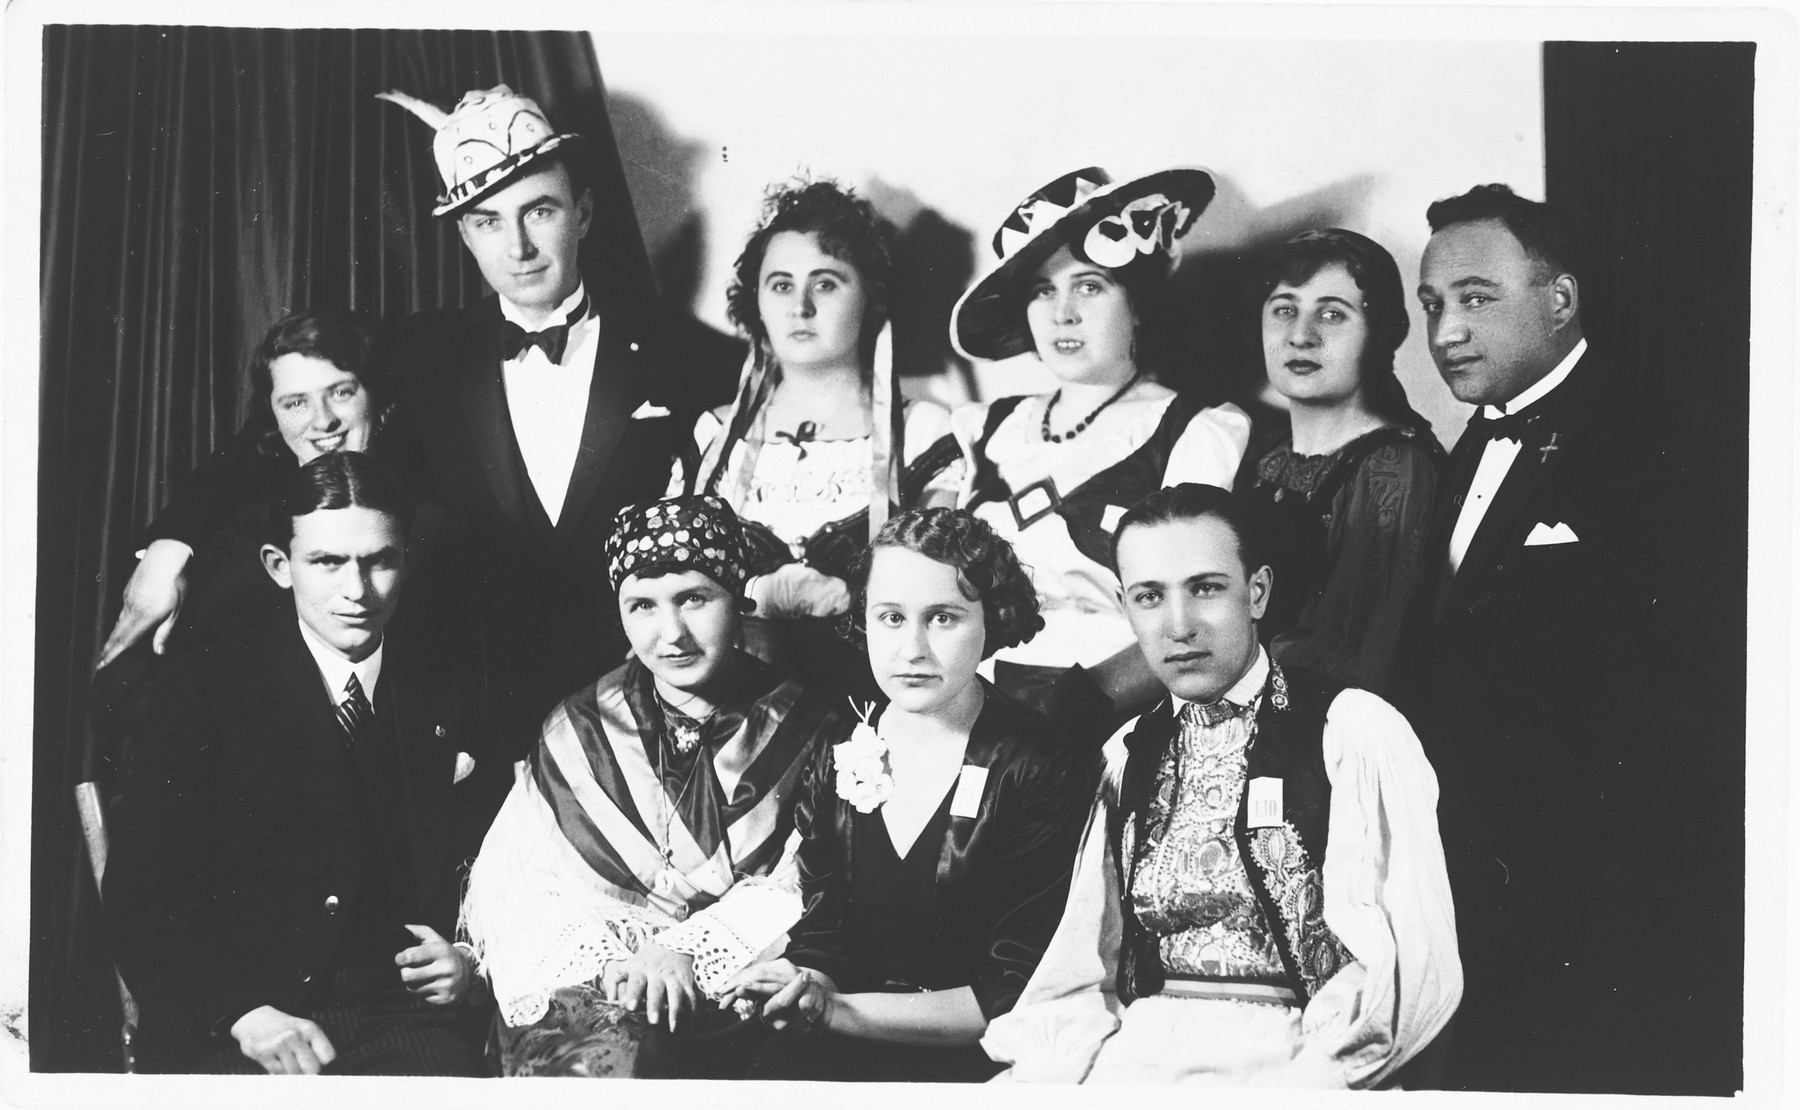 Group portrait of young Jewish men and women dressed in costumes in Osijek, Croatia.